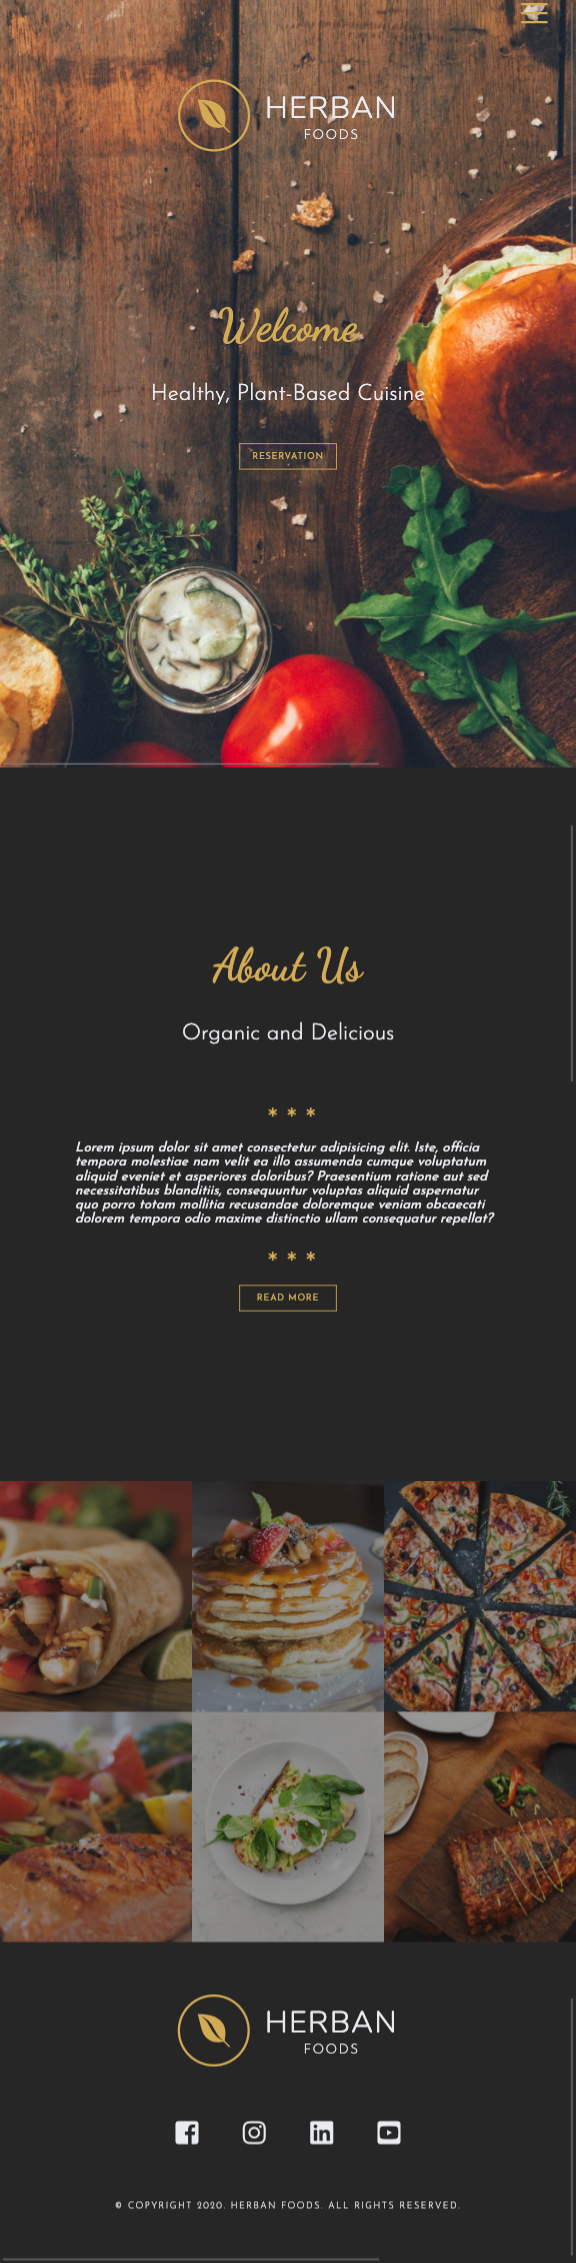 responsive restaurant website - tablet view